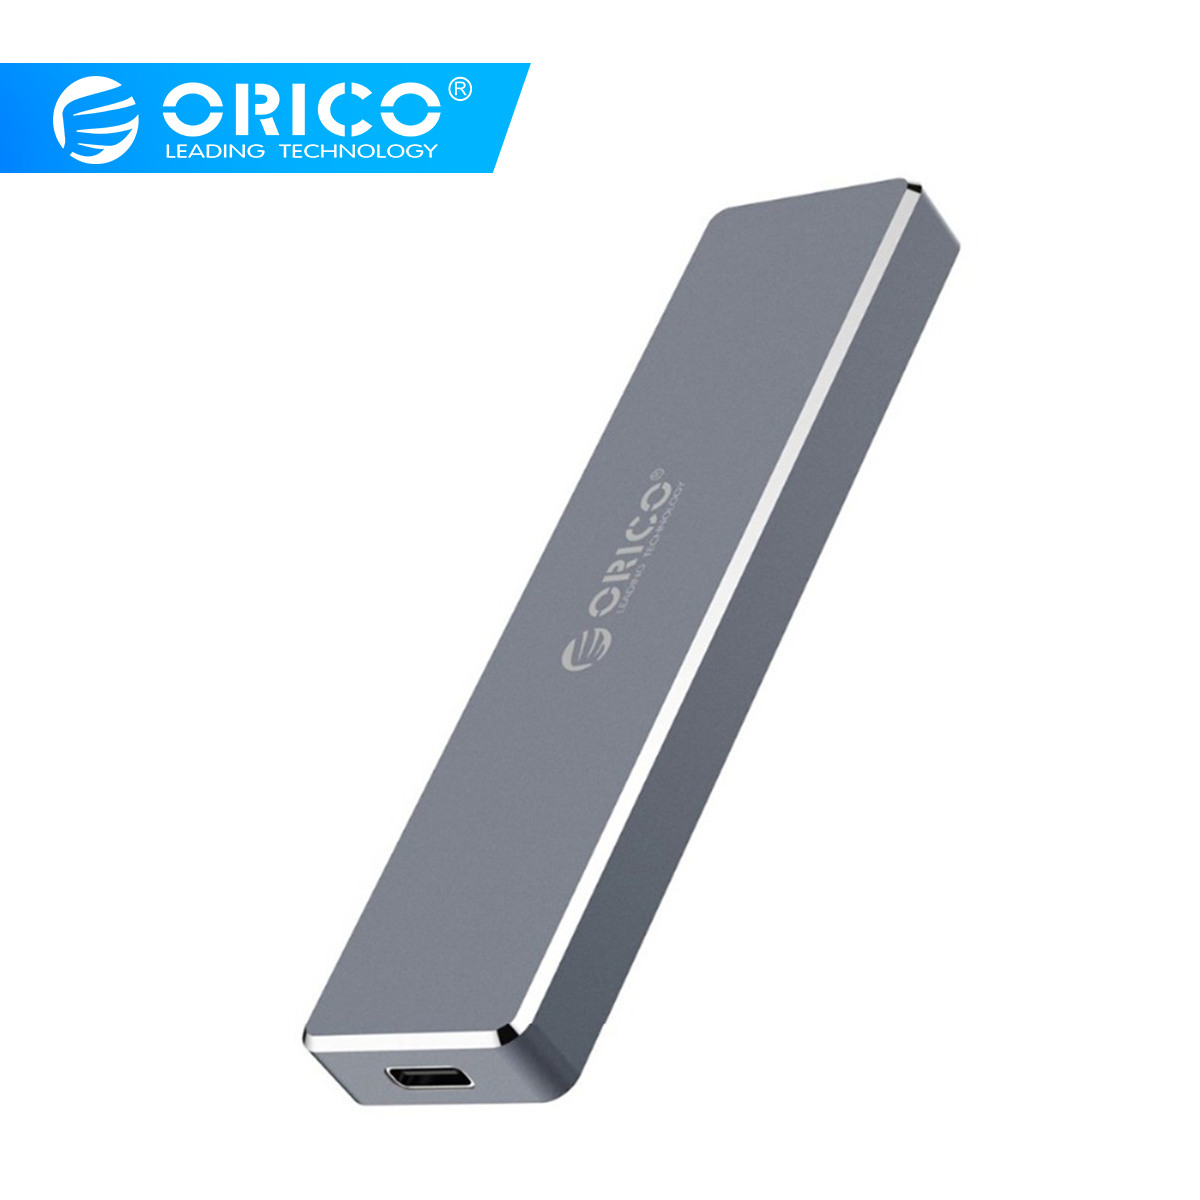 ORICO M.2 M Key SSD To USB 3.1 Type C Enclosure M.2 Portable SSD Hard Disk Cases Mini Clip Push open Enclosure Storage Case 2TB grille